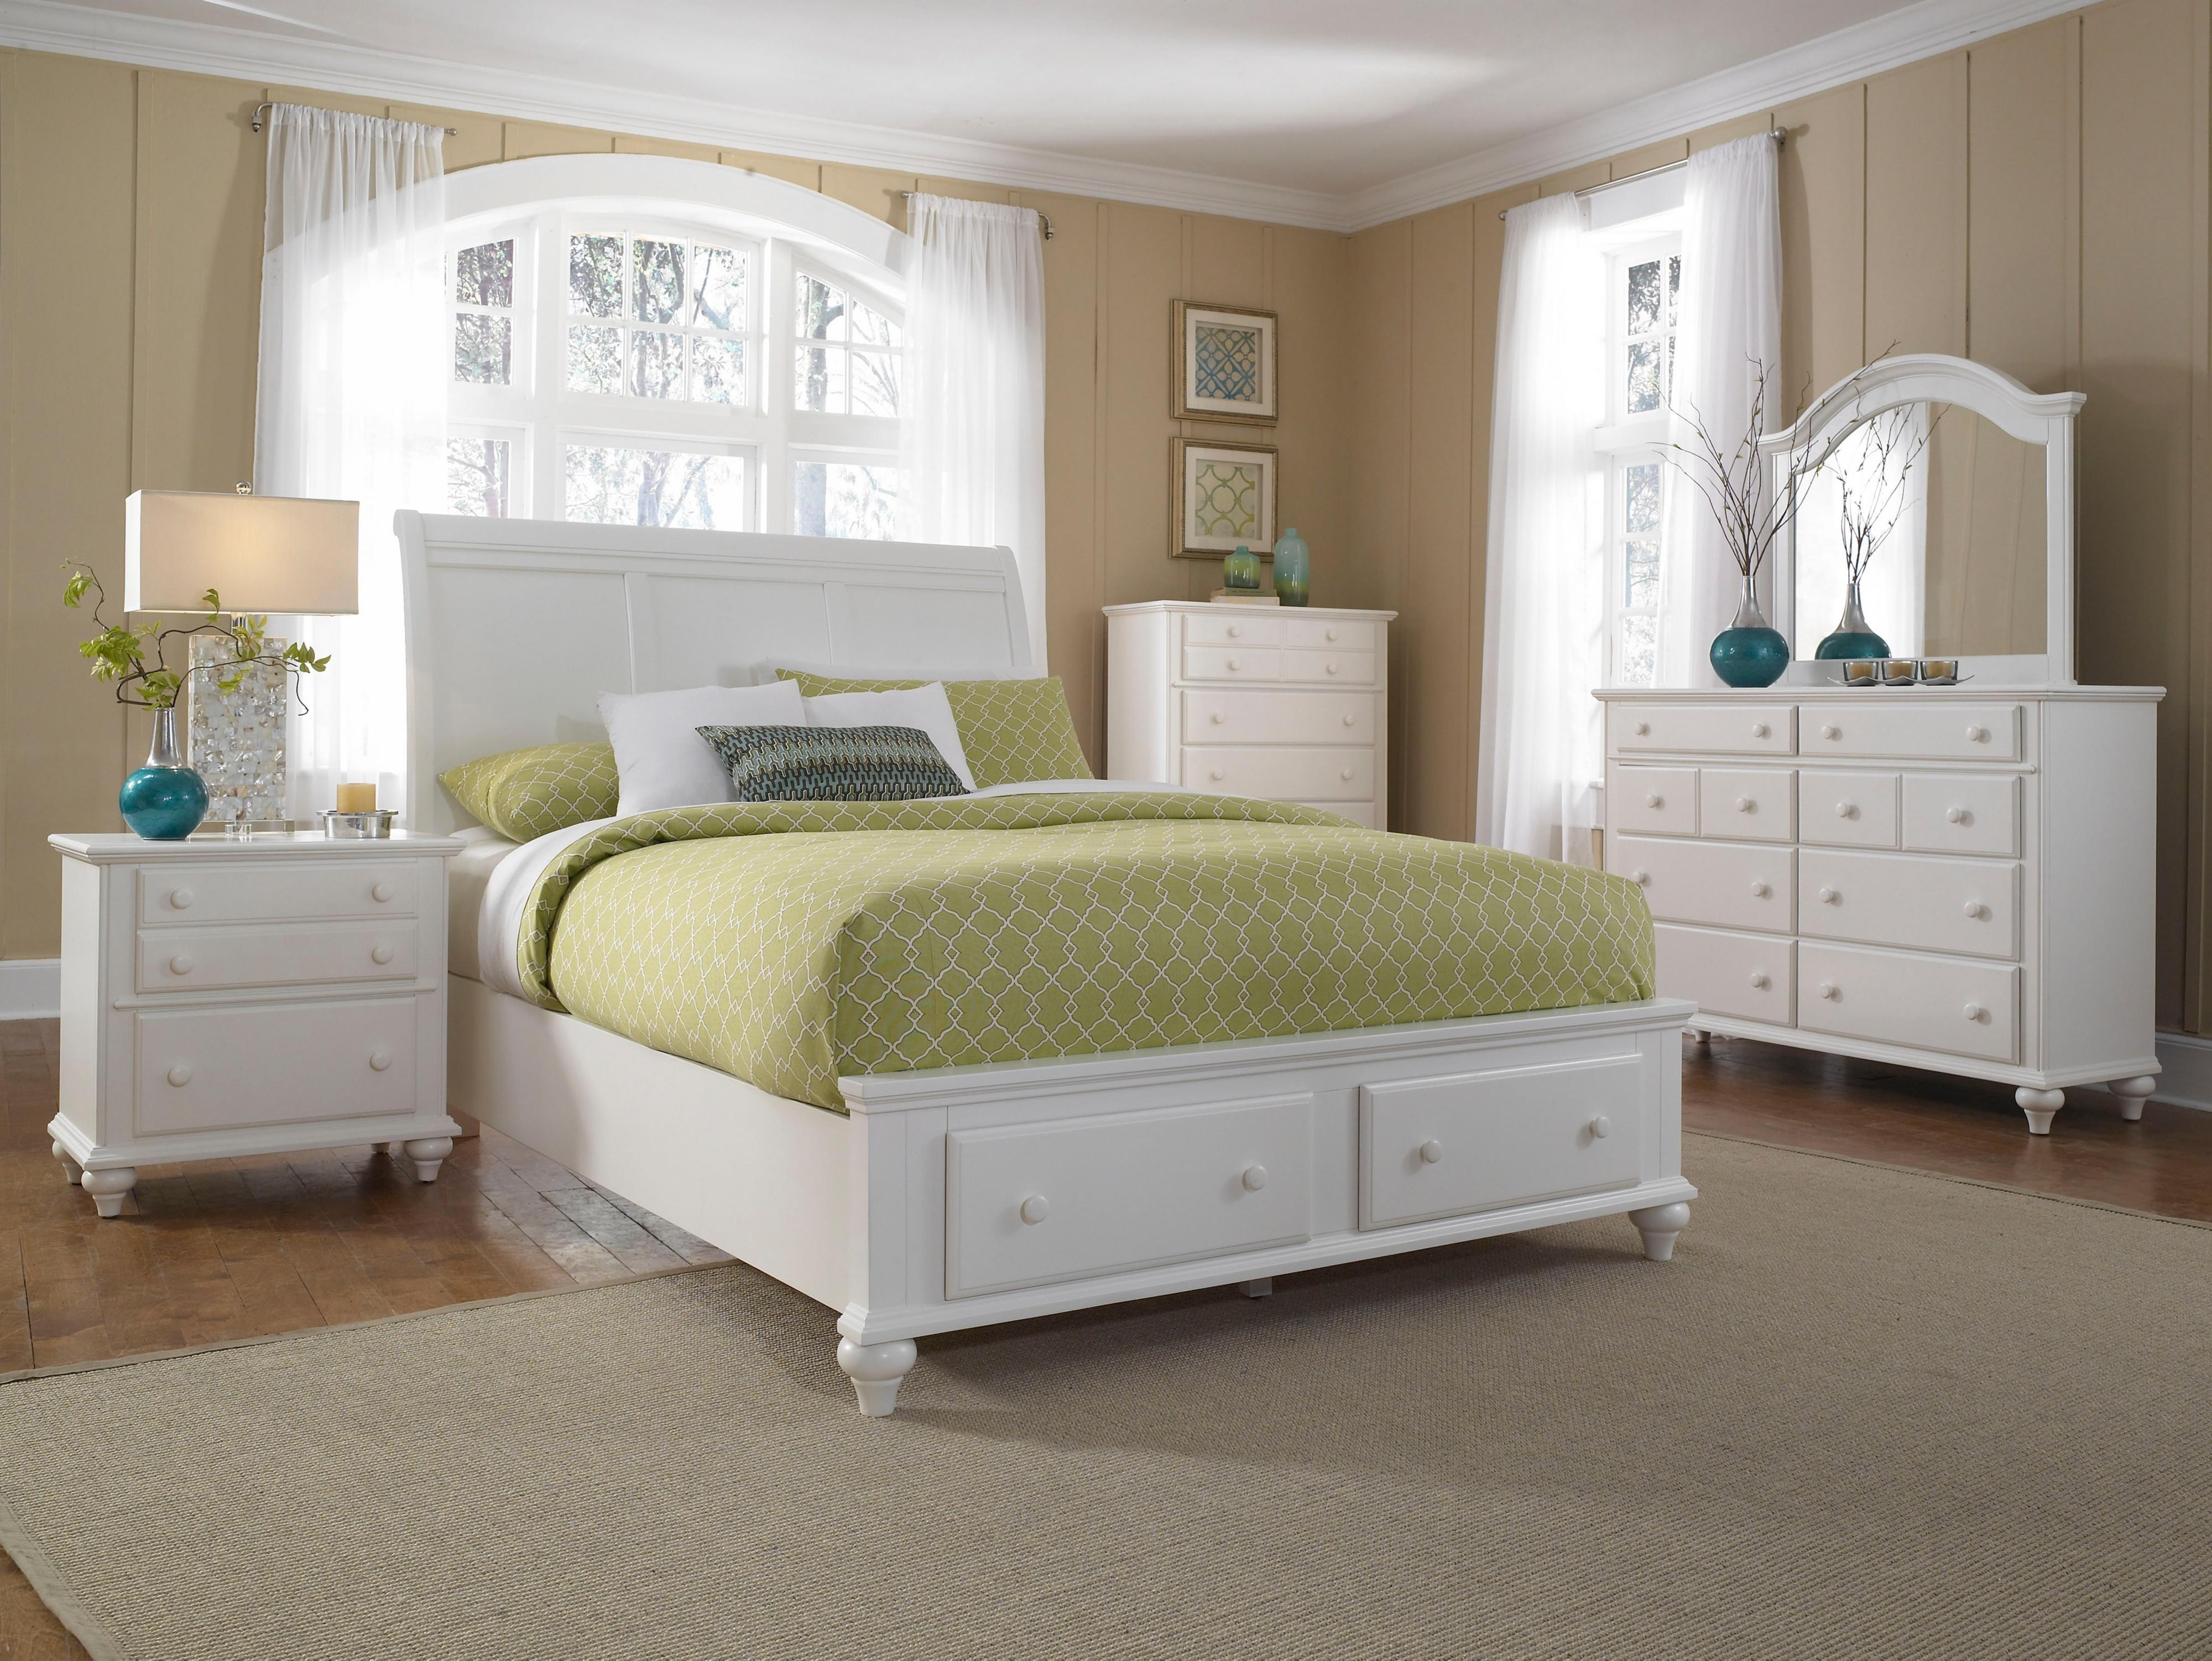 Broyhill Furniture Hayden Place Queen Bedroom Group - Item Number: 4649 Q Bedroom Group 2